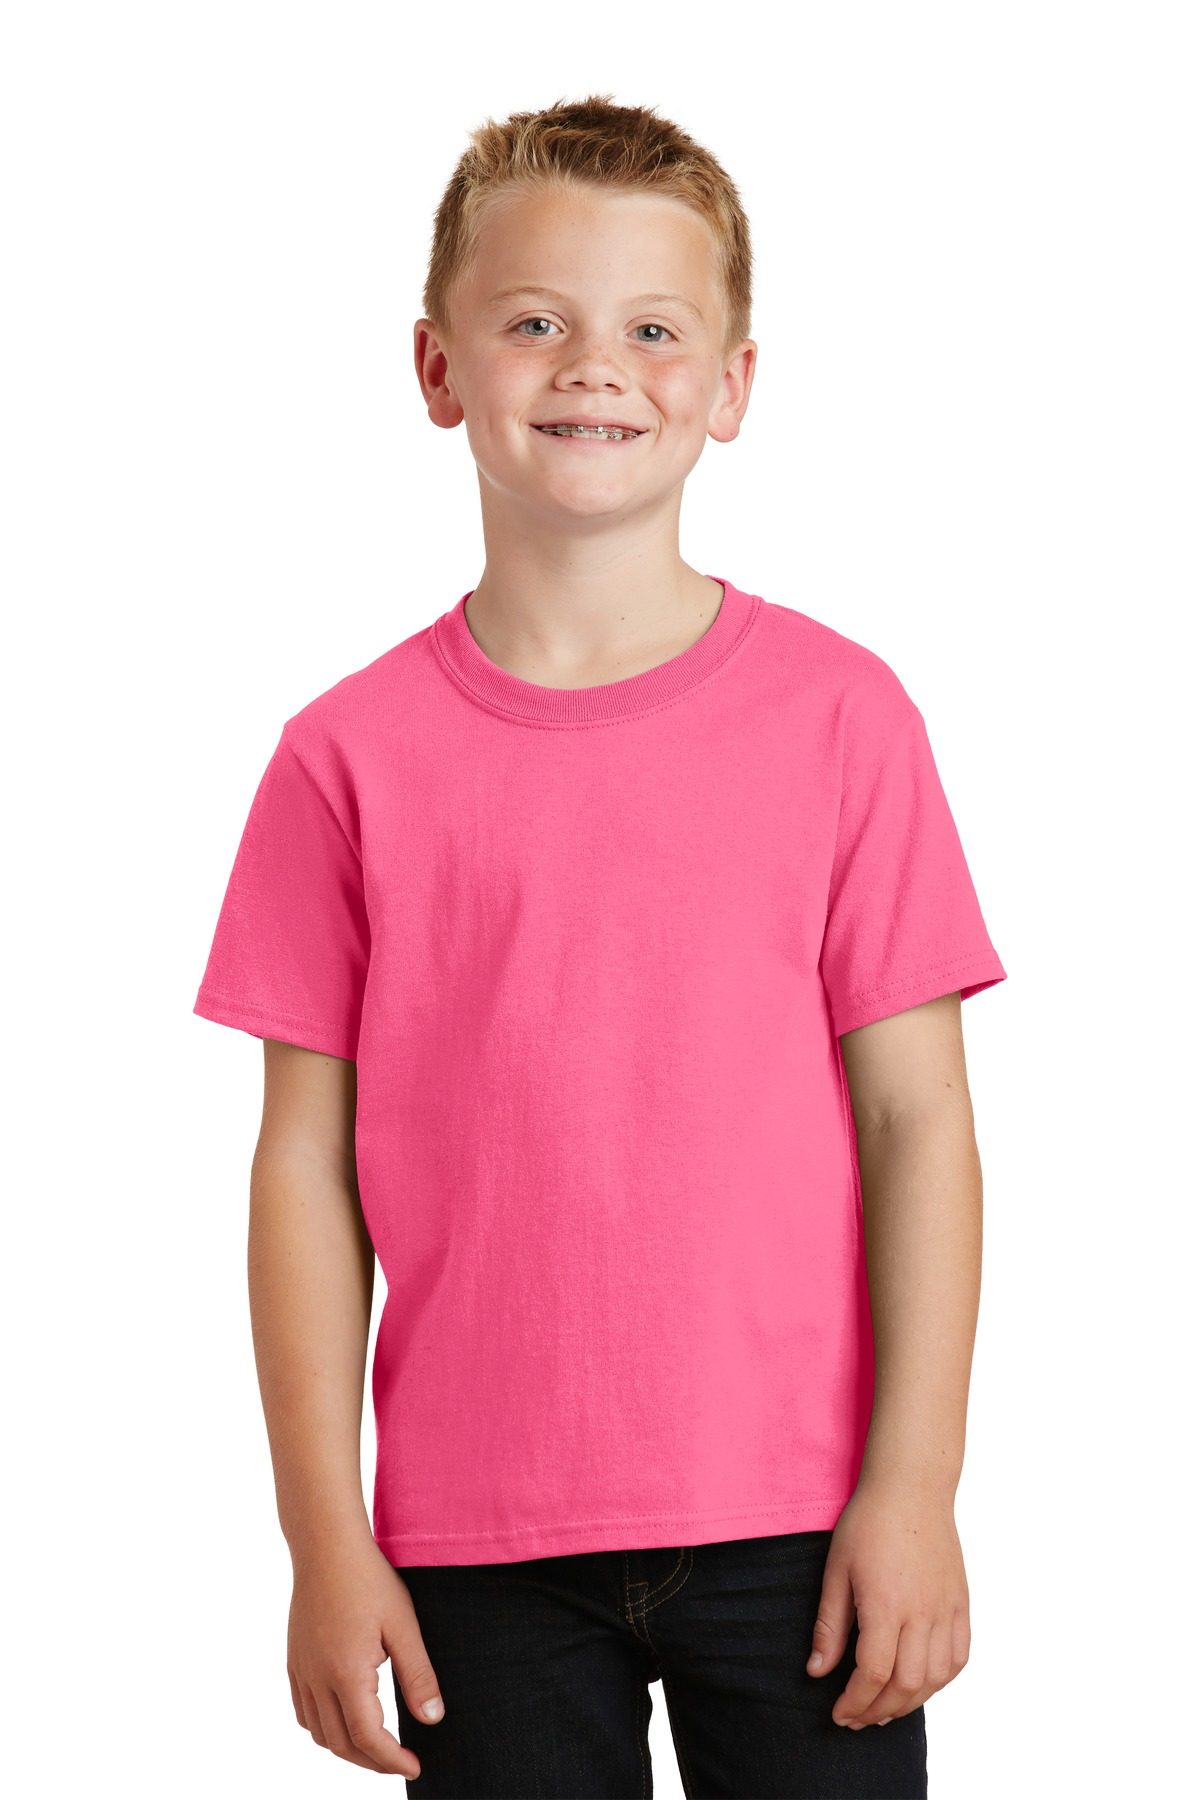 Port & Company ®  - Youth Core Cotton Tee. PC54Y - Neon Pink*